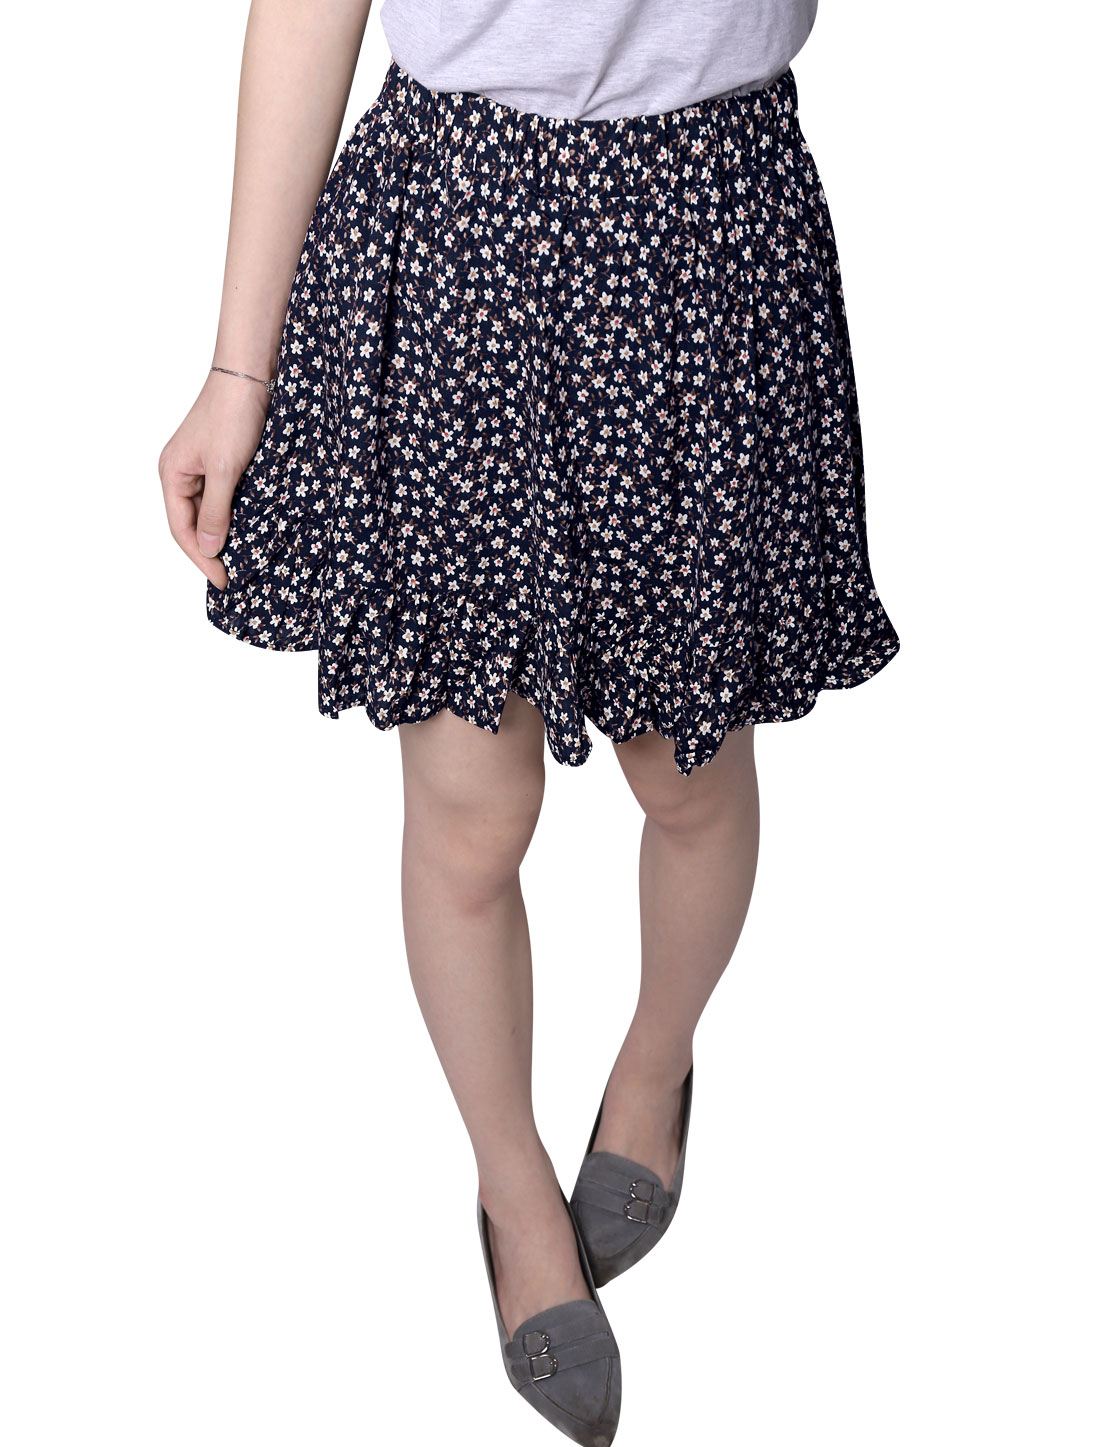 Woman Floral Prints Elastic Waist Fully Lined A Line Skort Navy Blue XS